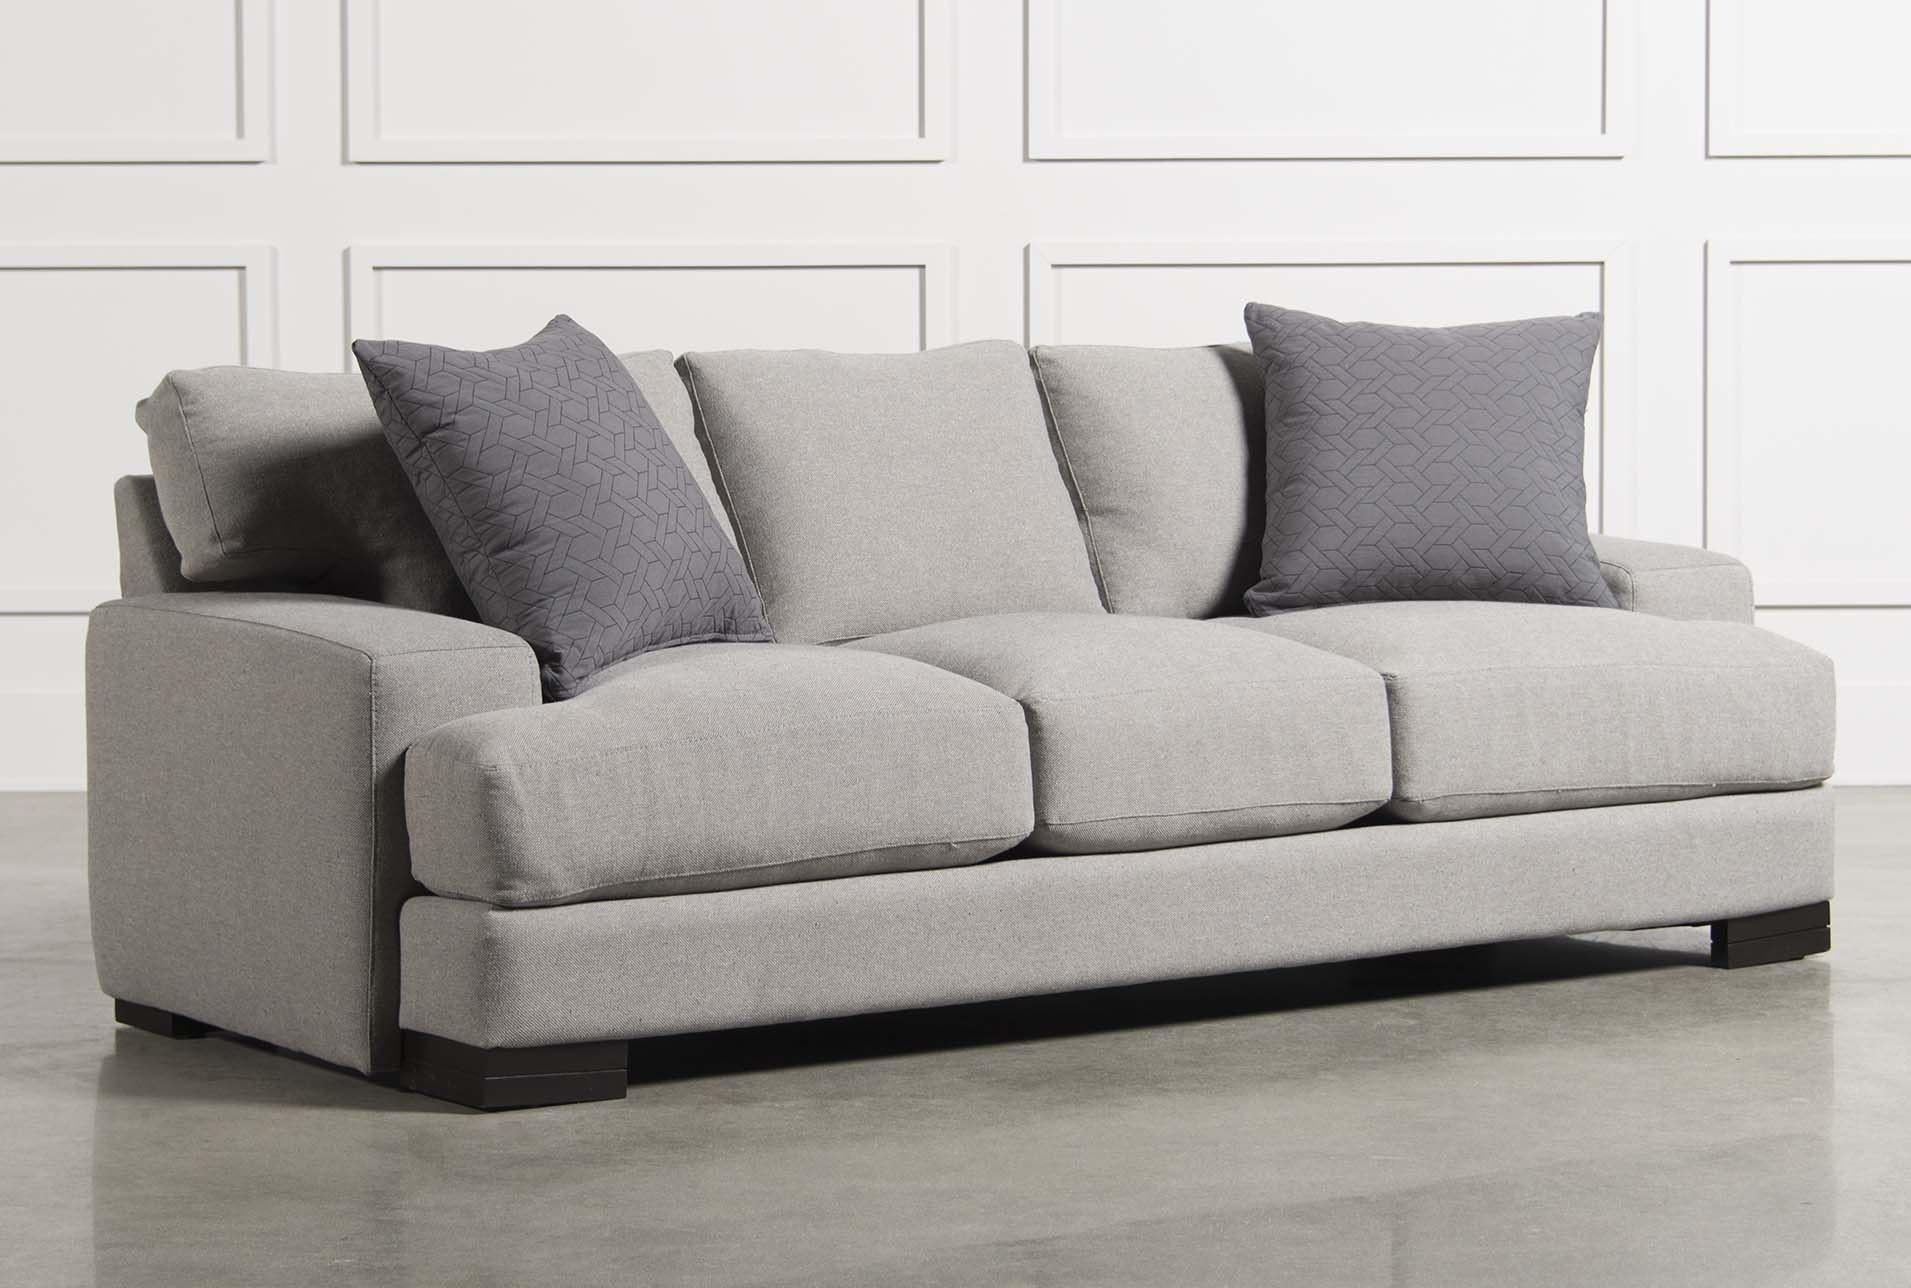 High End Sofa Brands – Fjellkjeden With Regard To High End Sofa (View 16 of 20)